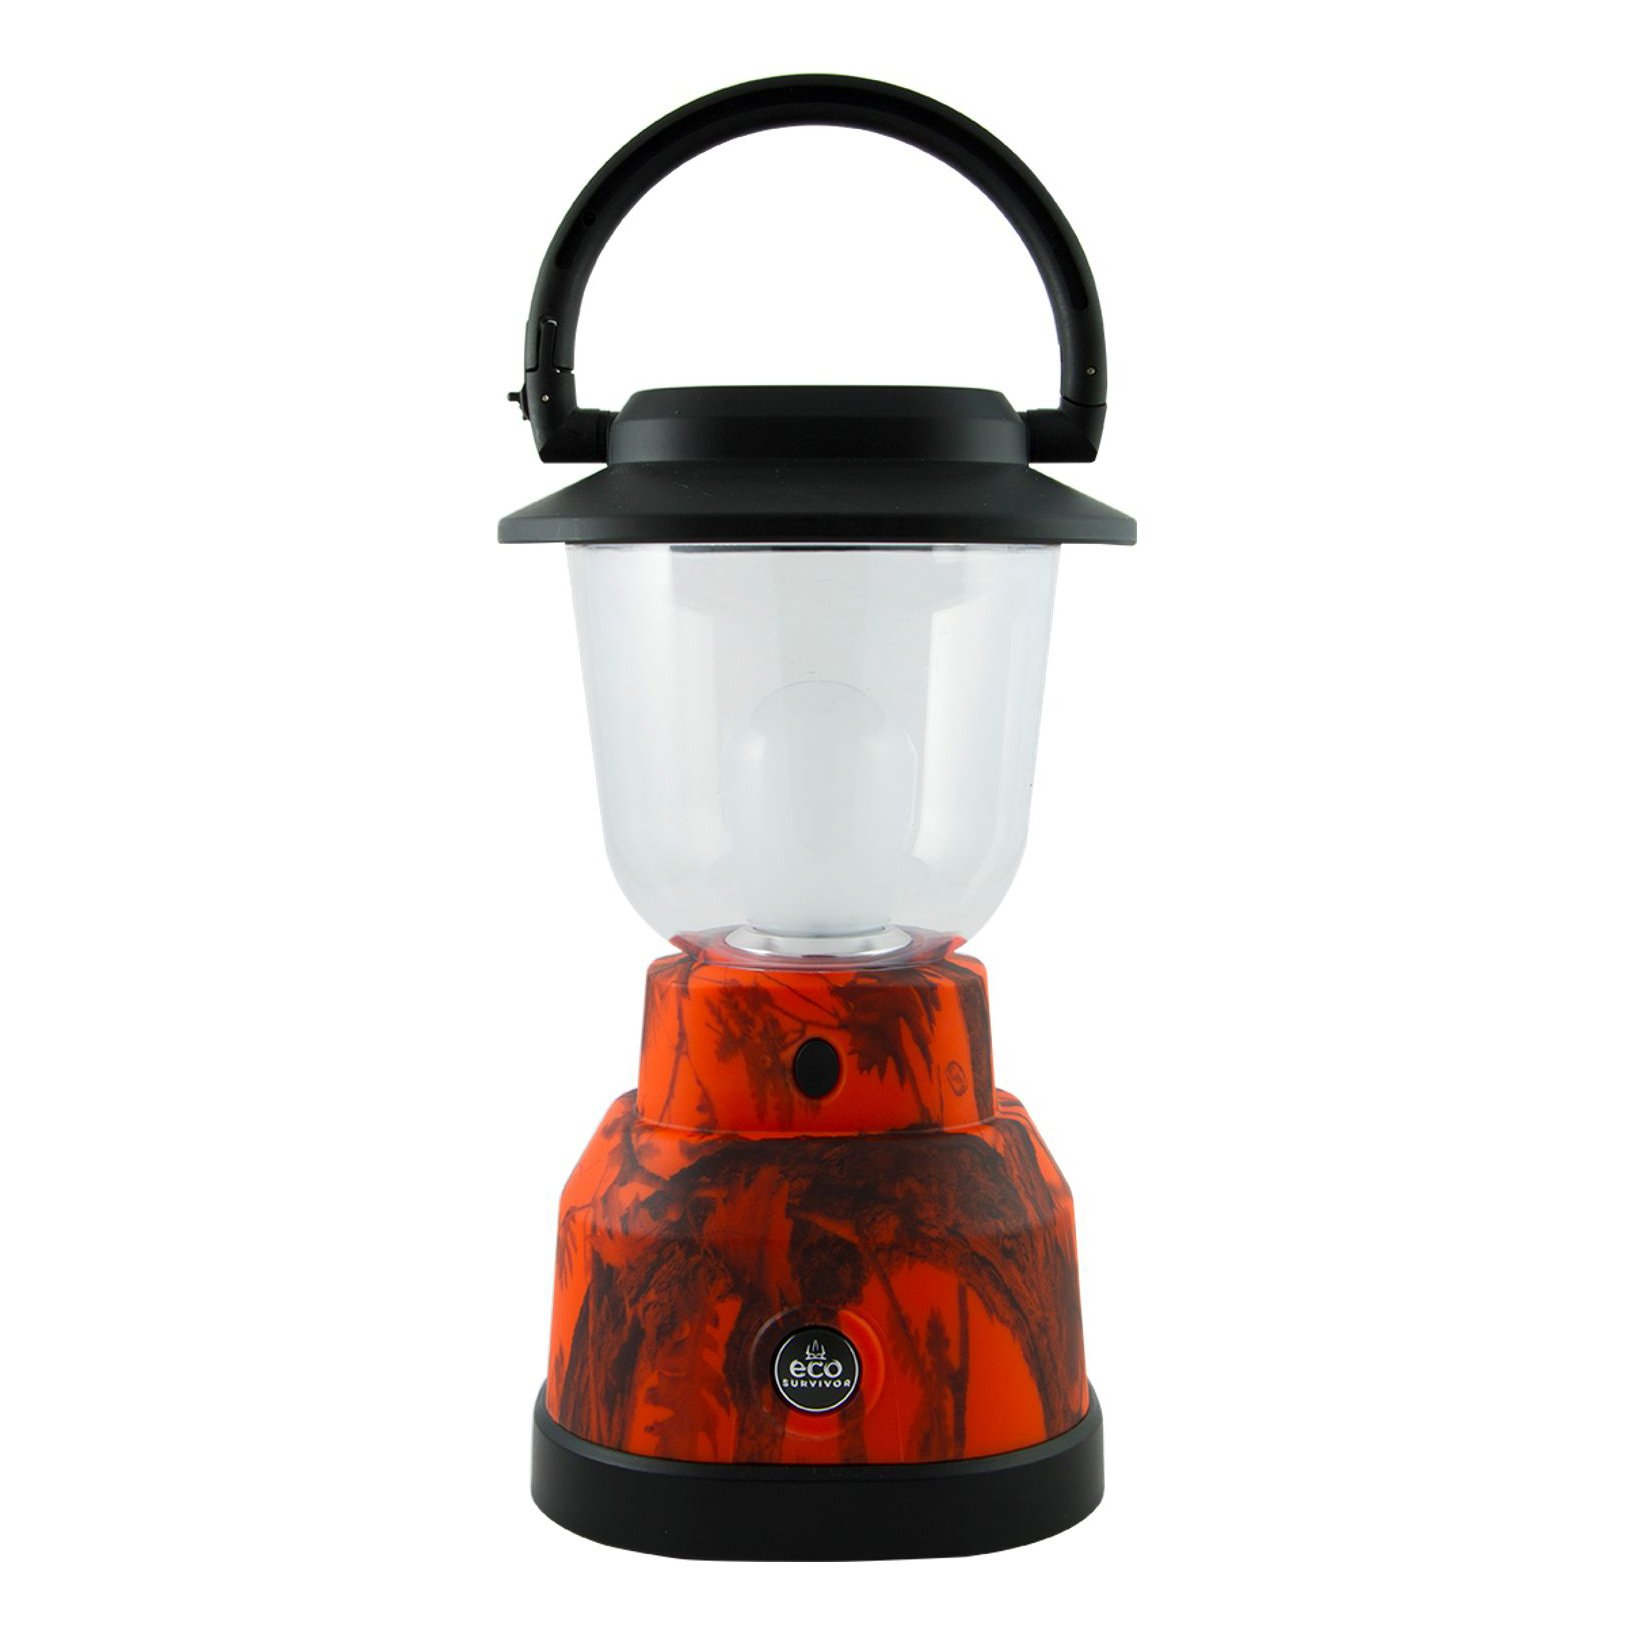 EcoSurvivor LED Lantern, Orange Camouflage, Outdoor, Waterproof, Lasts 180 Hours, Hanging Camping Lantern, Carabiner Handle, Great for Hiking, Storms, and Emergencies, 50% Charity Give Back, 14200